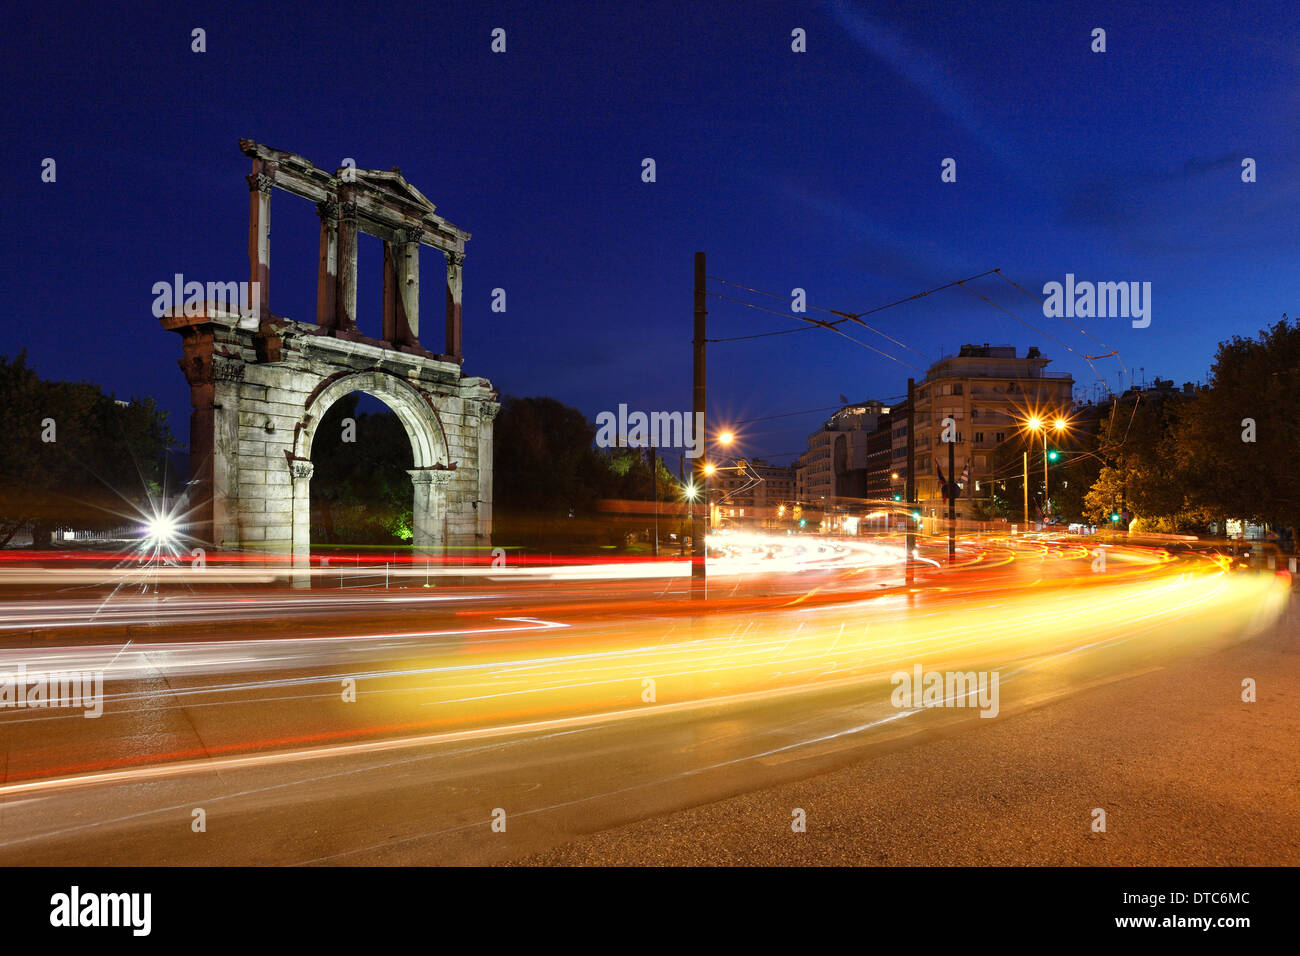 Arch of Hadrian (132 A.D.) in Athens, Greece - Stock Image